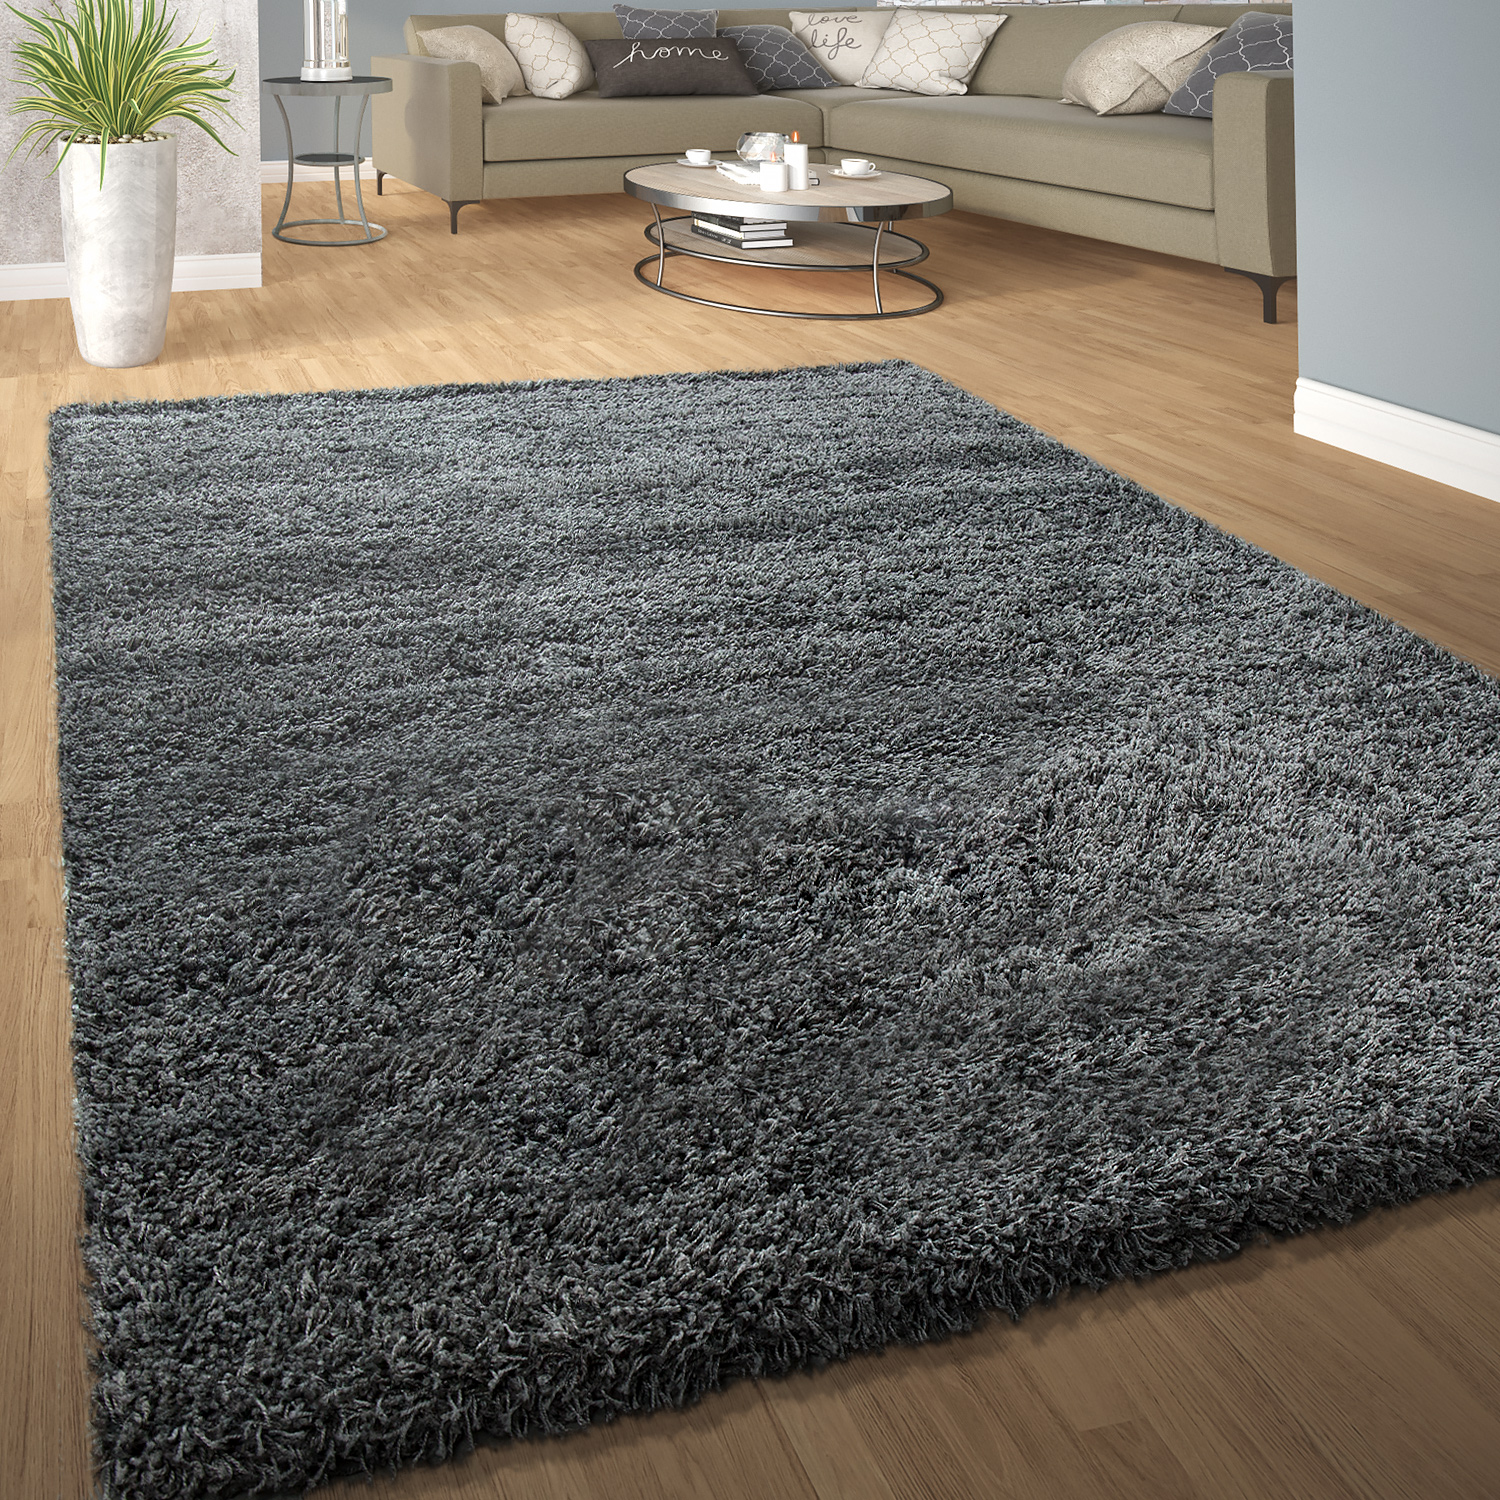 tapis shaggy poils hauts confortable doux poils longs moderne uni coloris gris tapis tapis. Black Bedroom Furniture Sets. Home Design Ideas